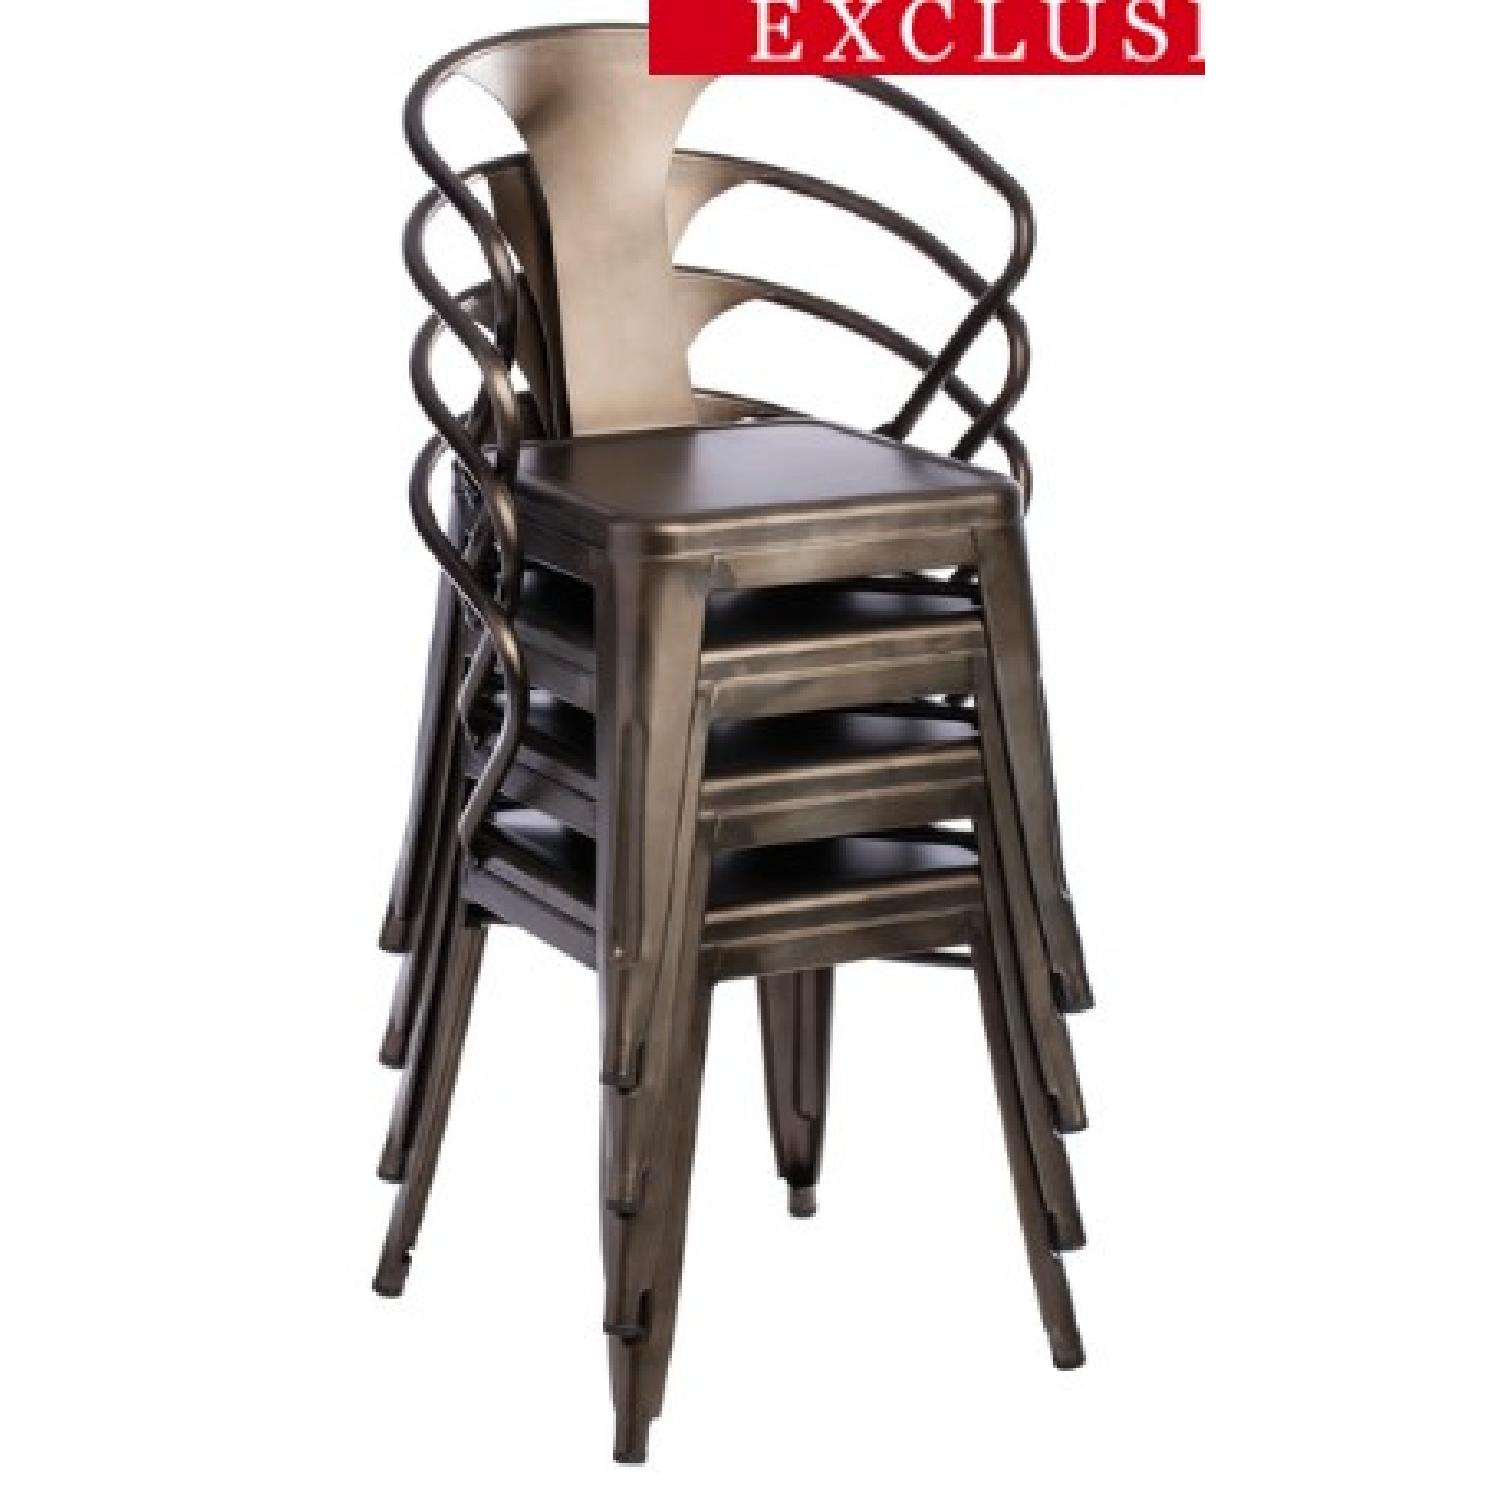 Vintage Tabouret Stacking Chairs - image-6